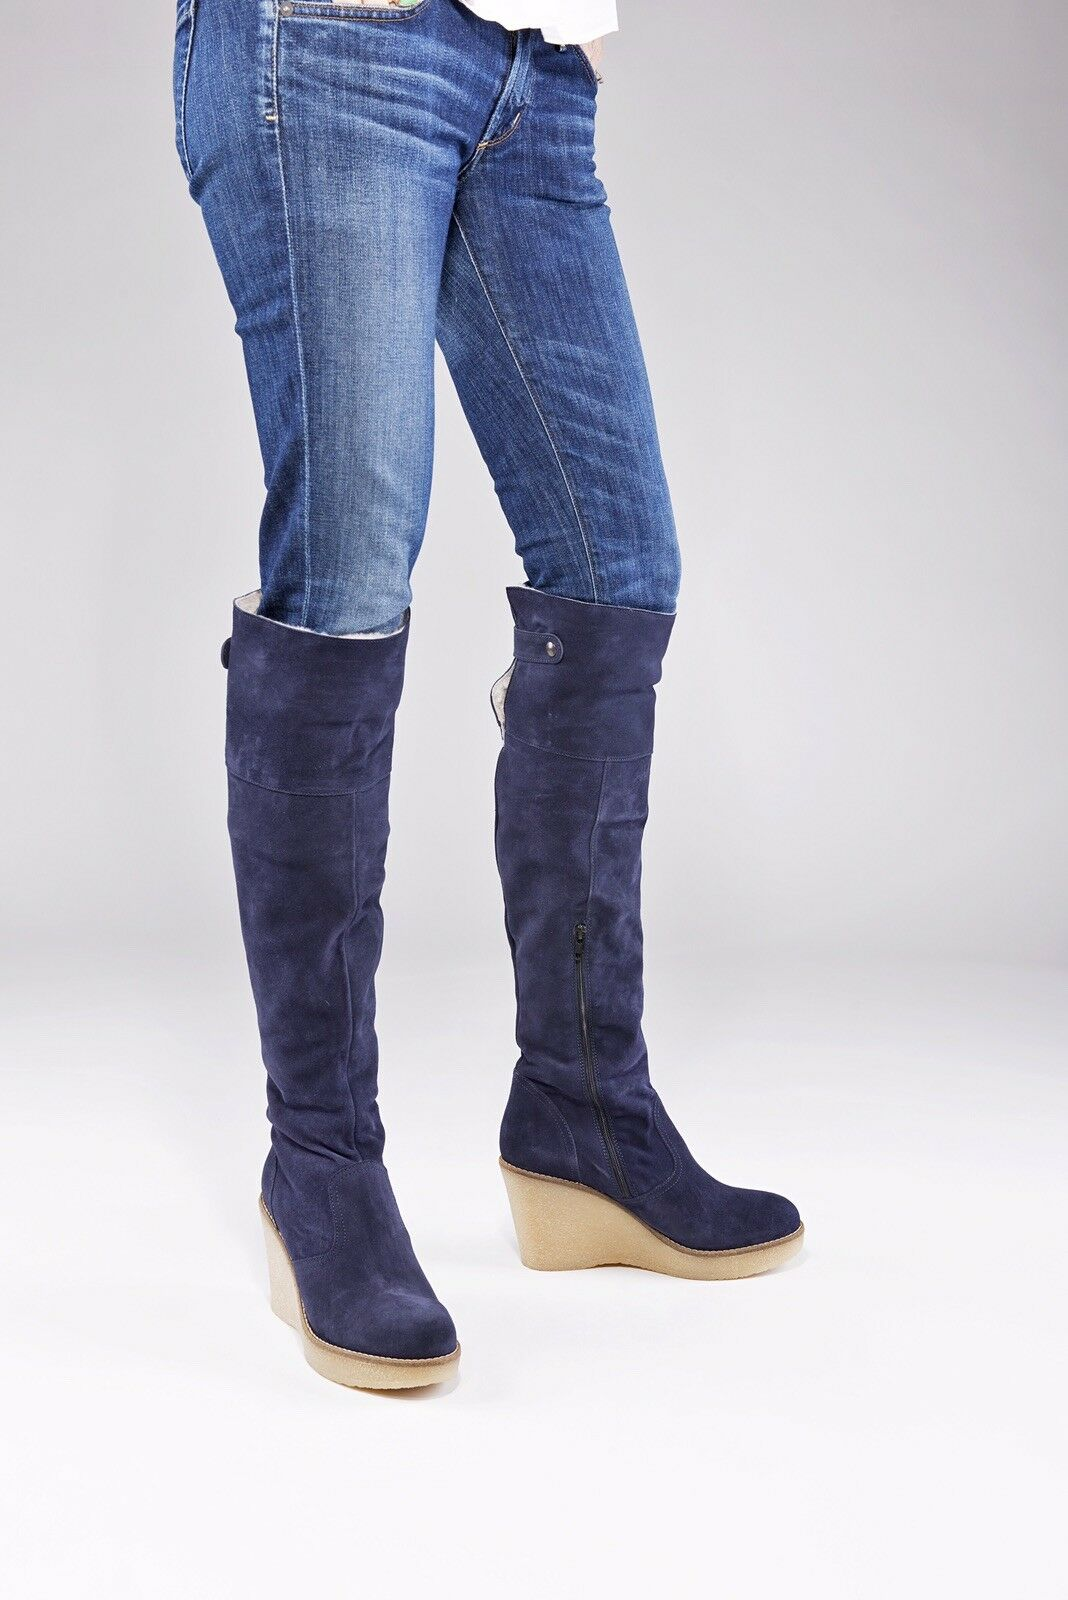 Narrow calf shearling boots by Skinnycalf Boots